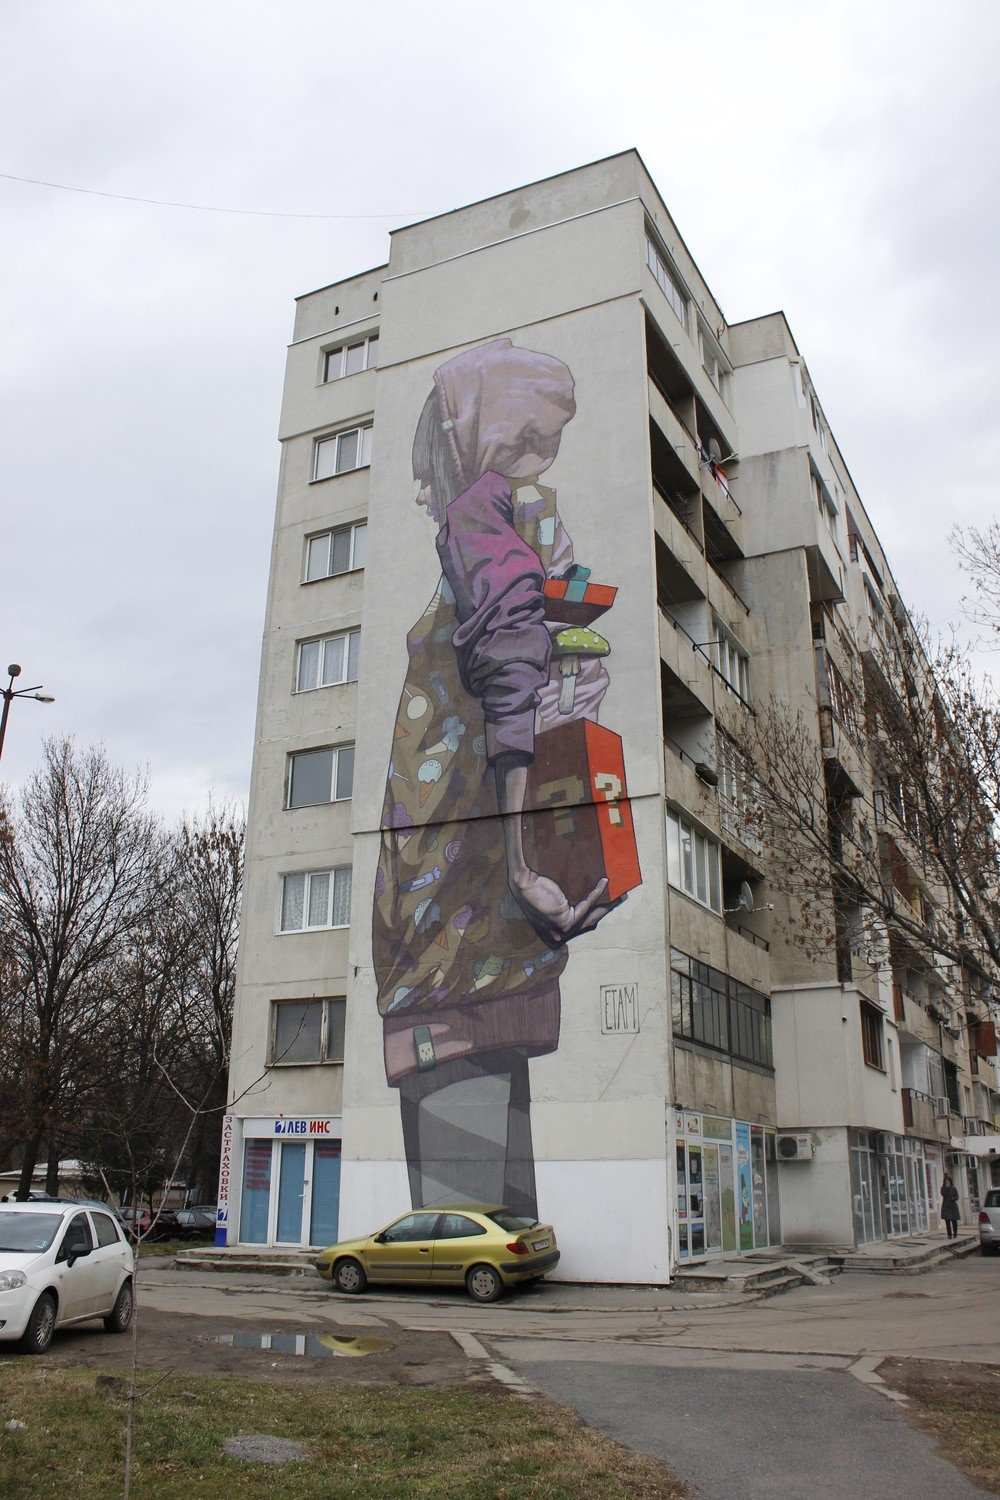 Sofia Mural Tour | Price from